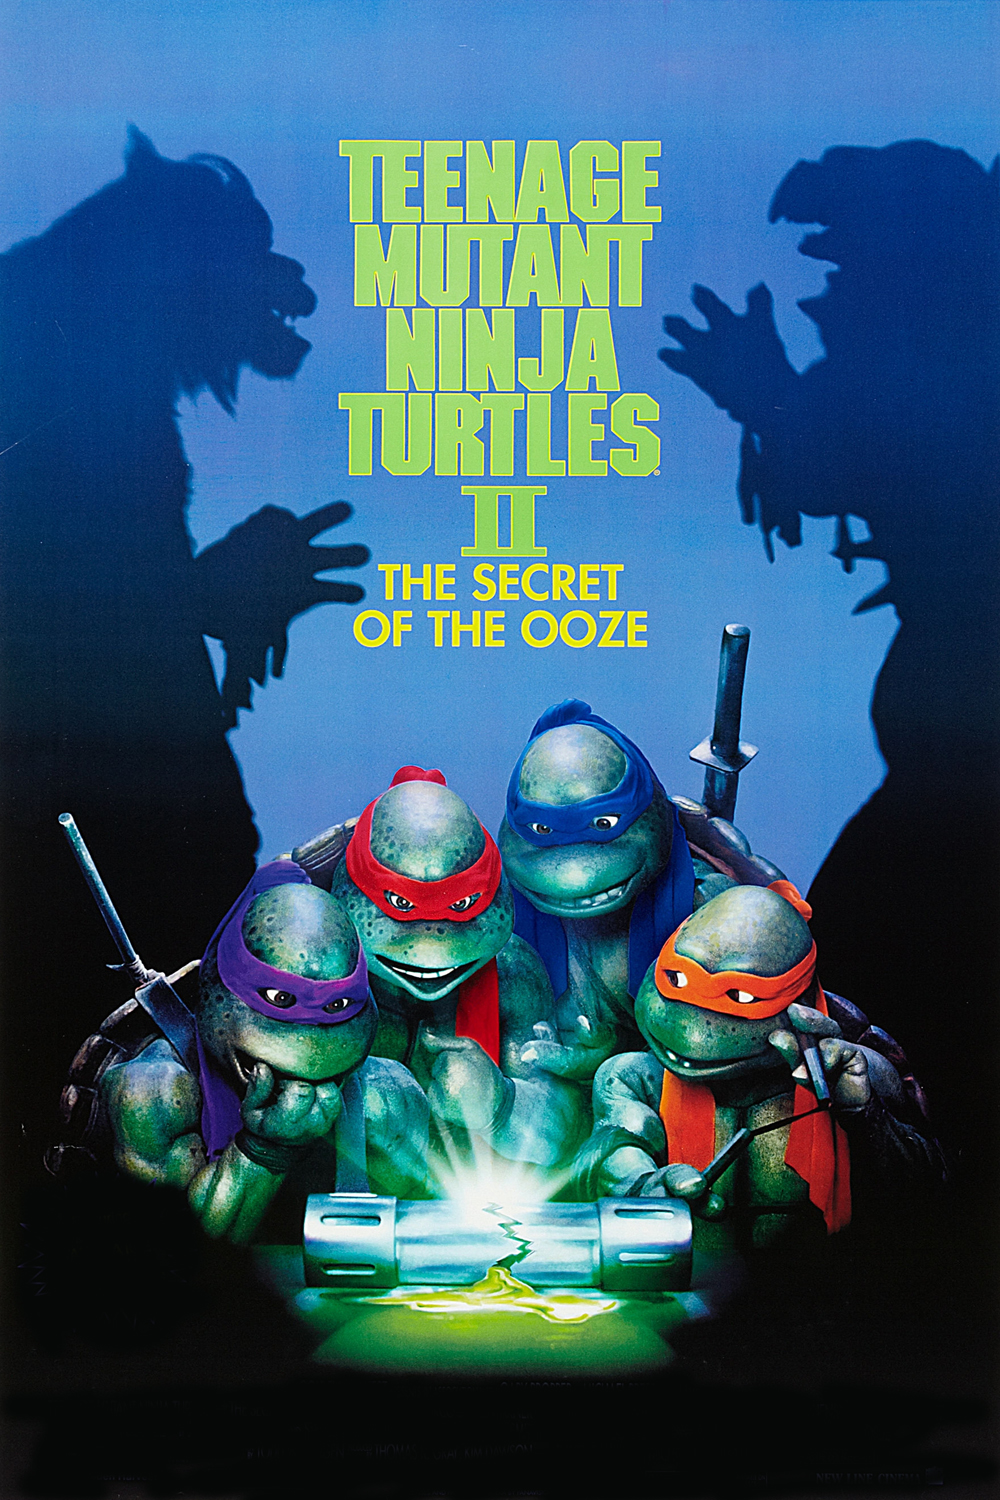 teenage-mutant-ninja-turtles-ii-the-secret-of-the-ooze_1404327754.jpg